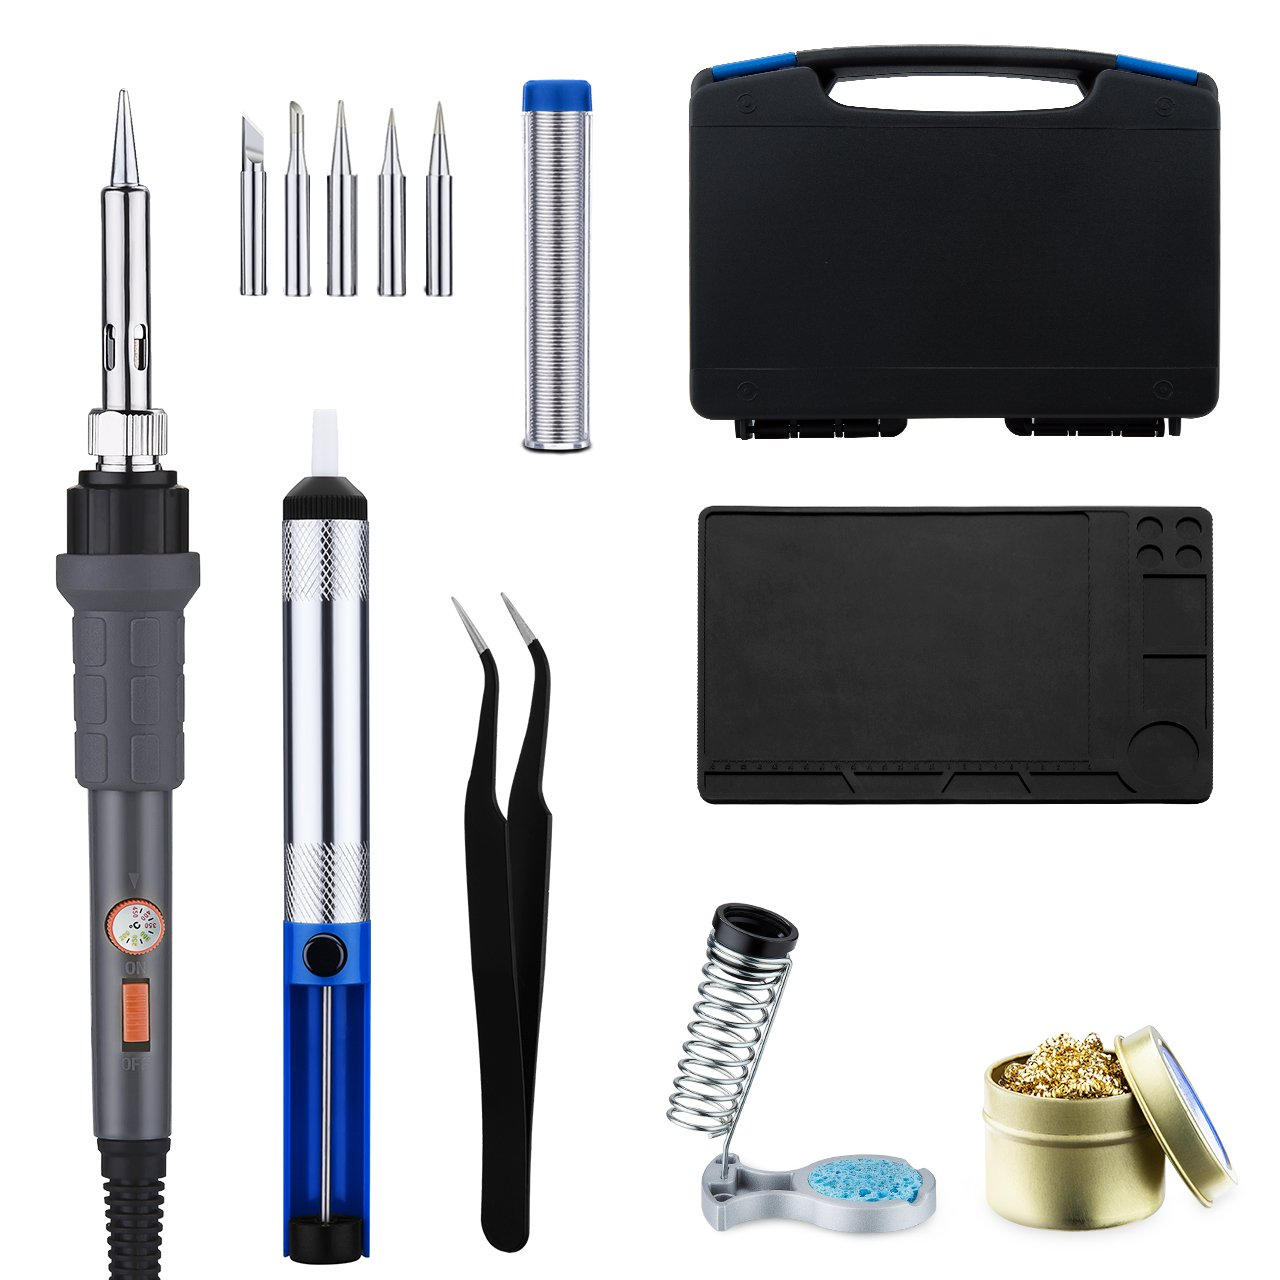 TOPELEK Soldering Iron Kit, TopElek 60W Adjustable Temperature Soldering Iron Set with ON/OFF Switch, 5pcs Soldering Tips, Desoldering Pump, Soldering Iron Stand, Tweezers, Carry Case